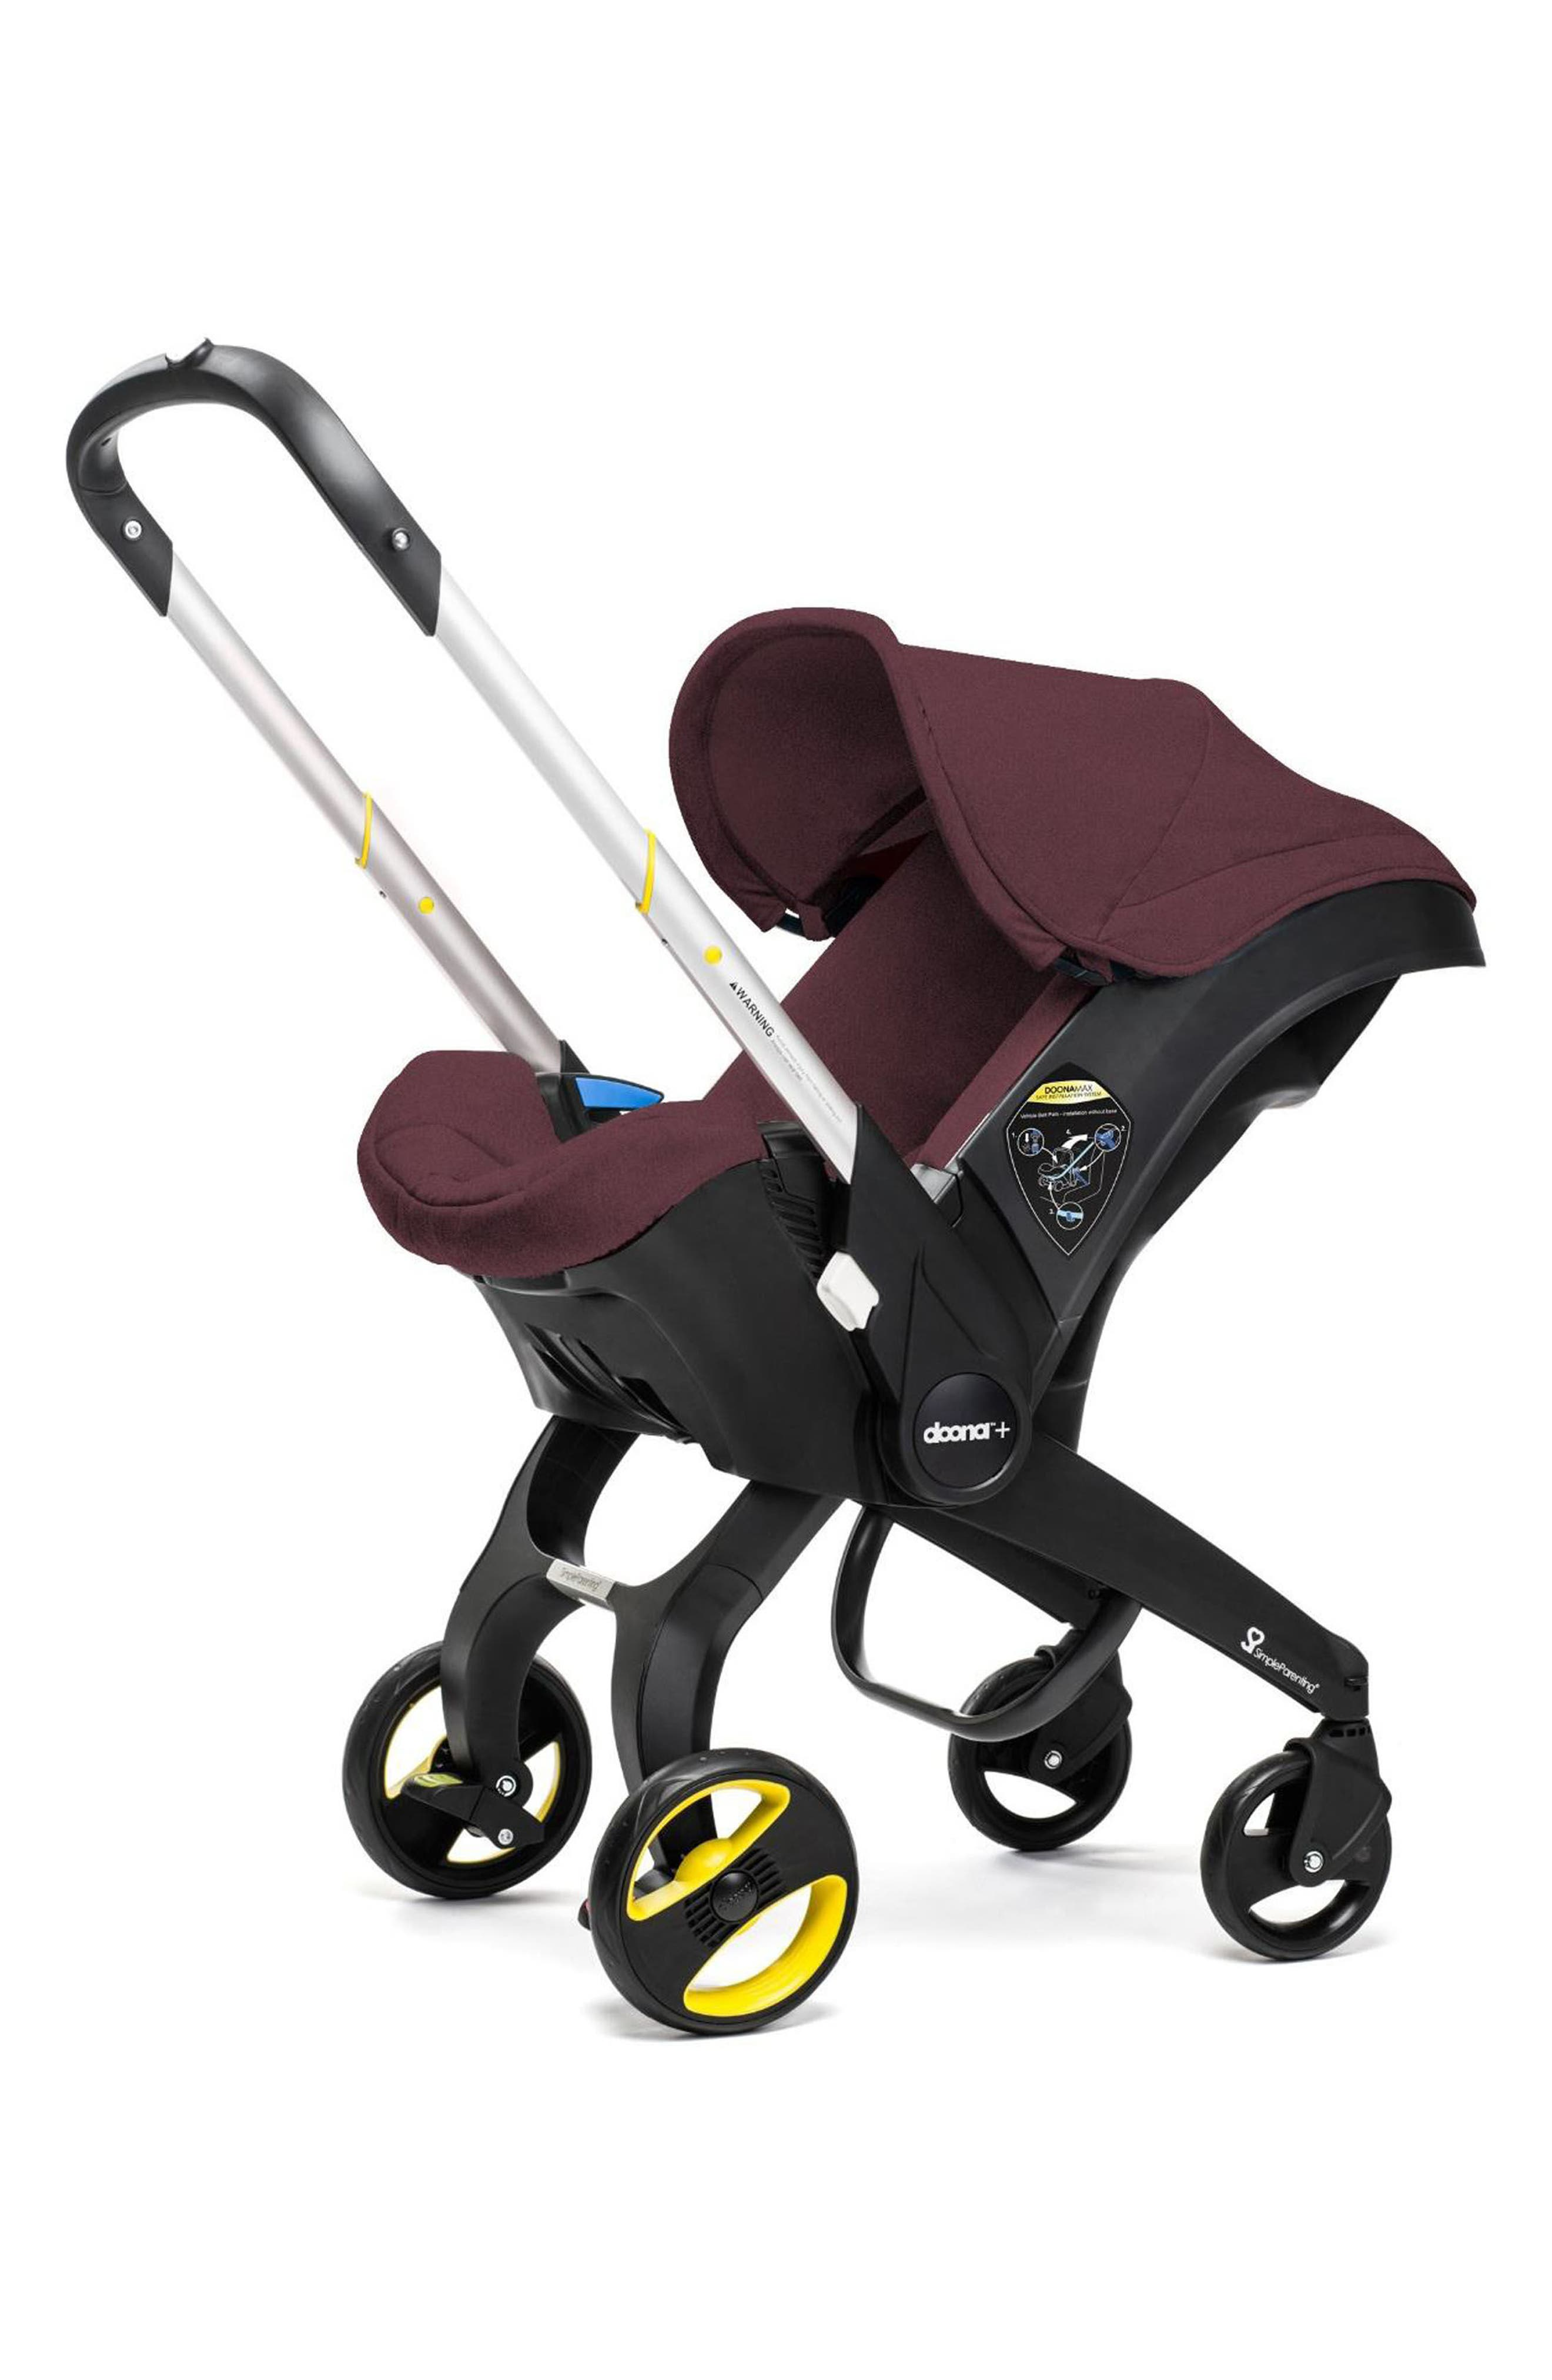 Convertible Infant Car Seat/Compact Stroller System,                             Main thumbnail 1, color,                             930